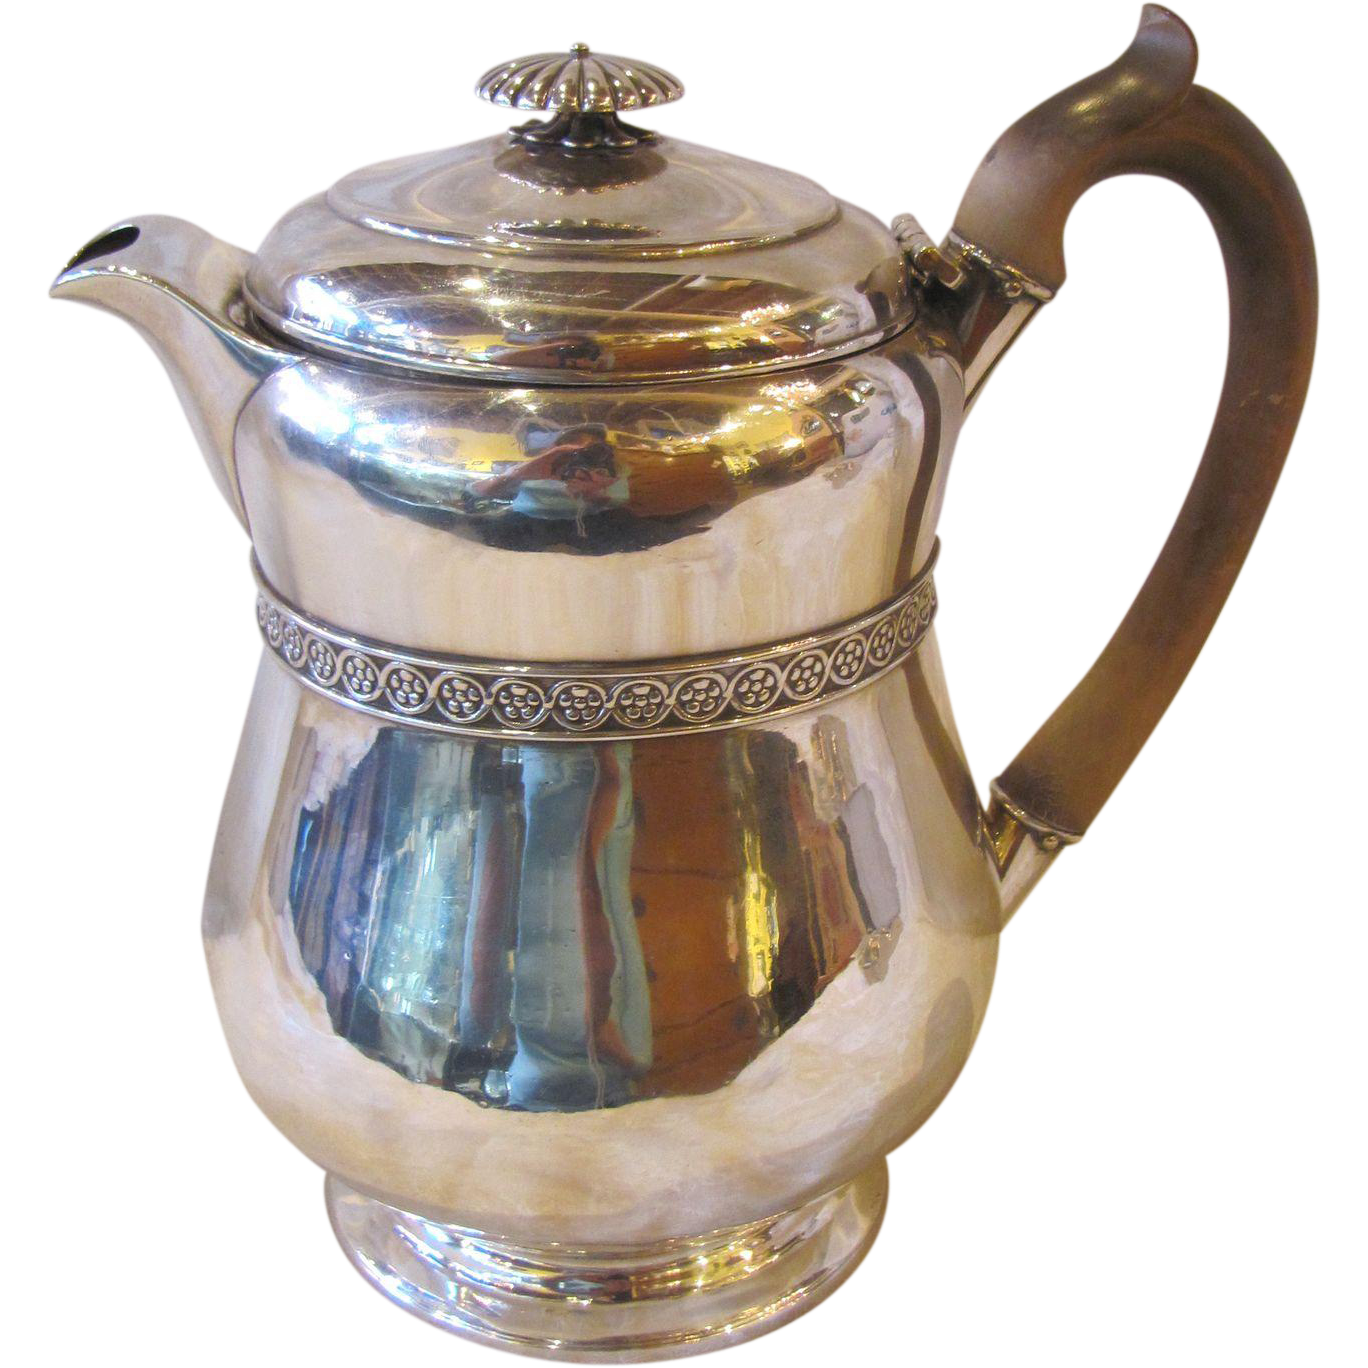 Antique English Sterling Silver Teapot London 1815 Benjamin Smith